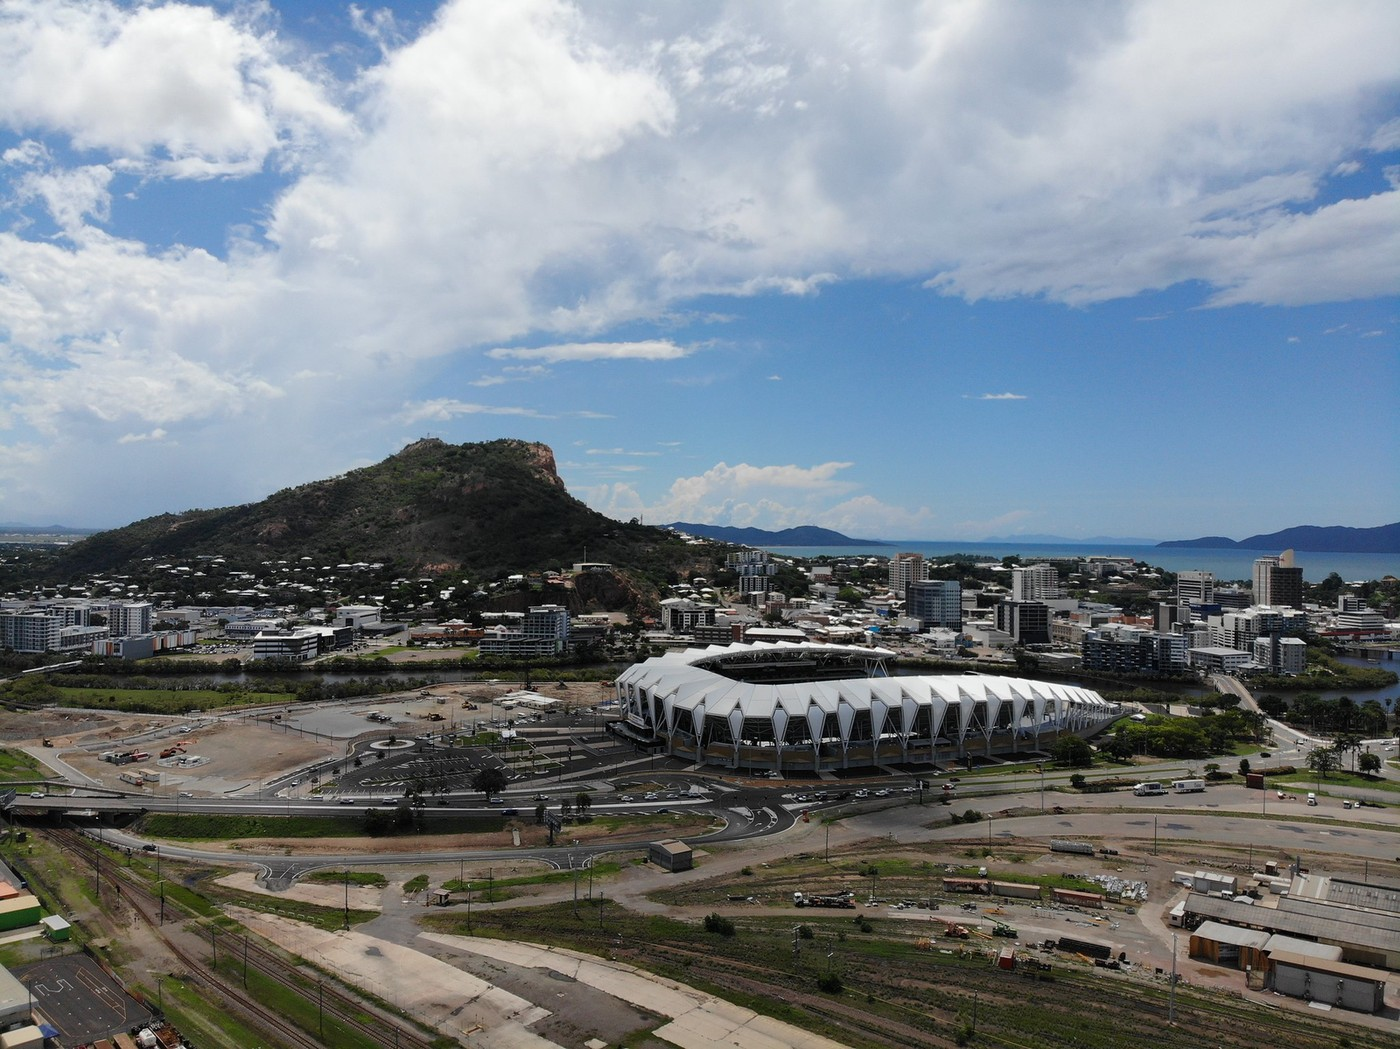 Queensland Country Bank Stadium, Townsville